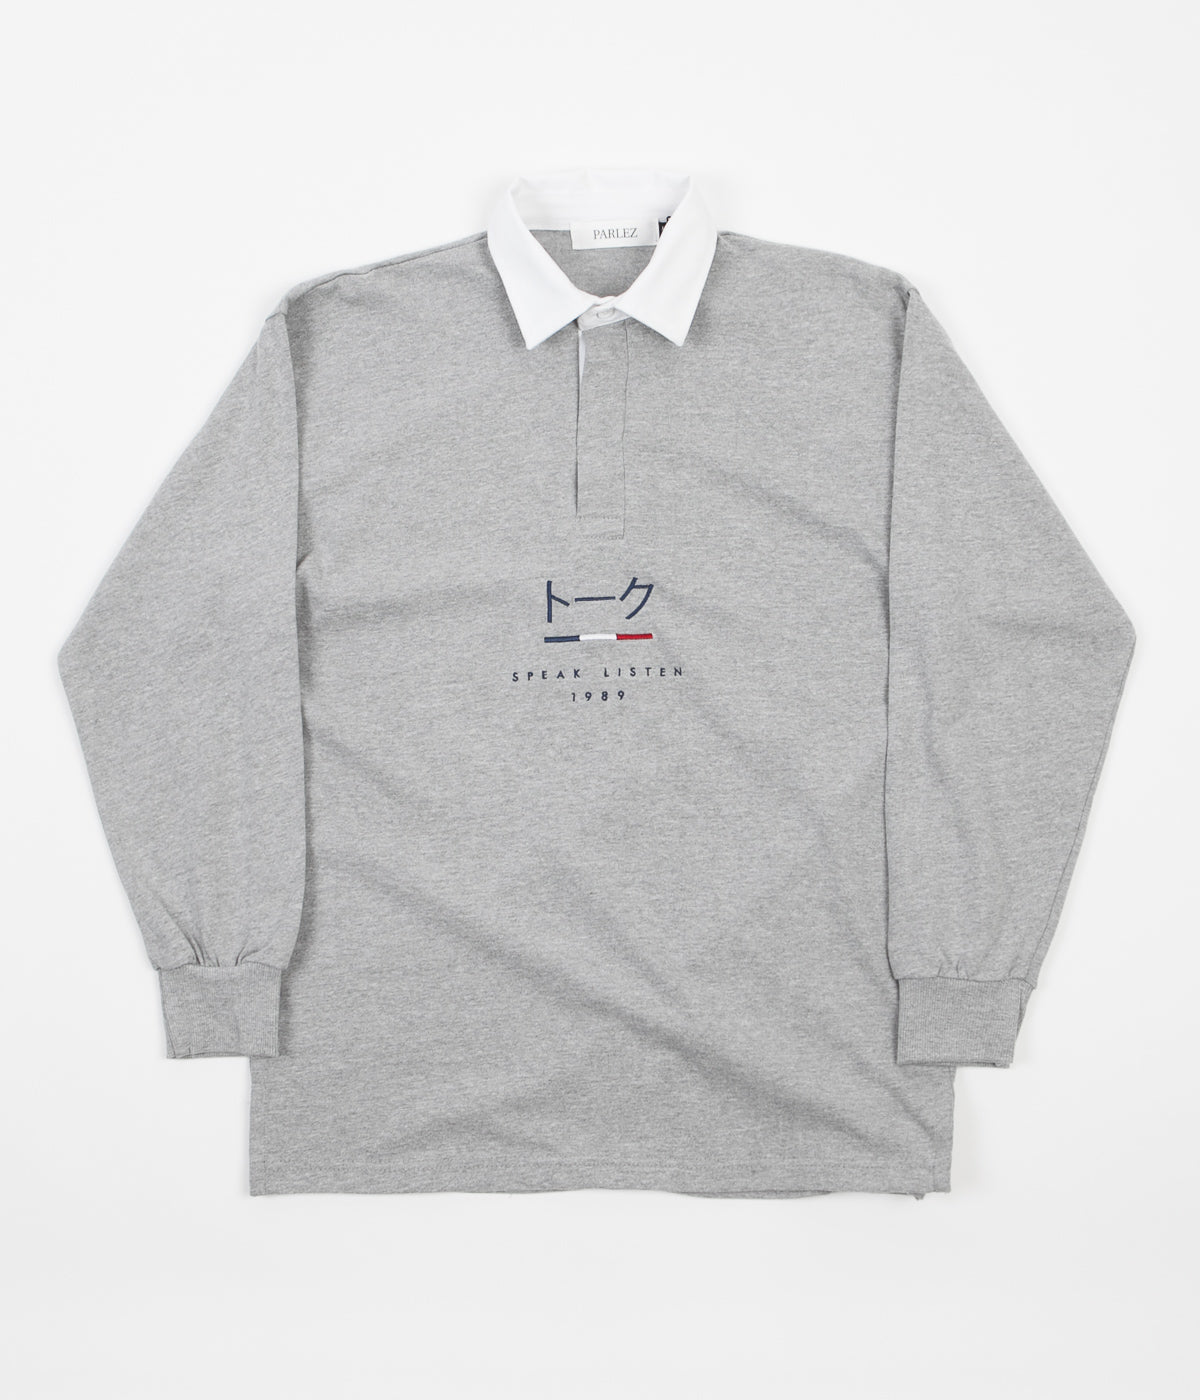 Parlez Kiku Rugby Shirt - Heather Grey